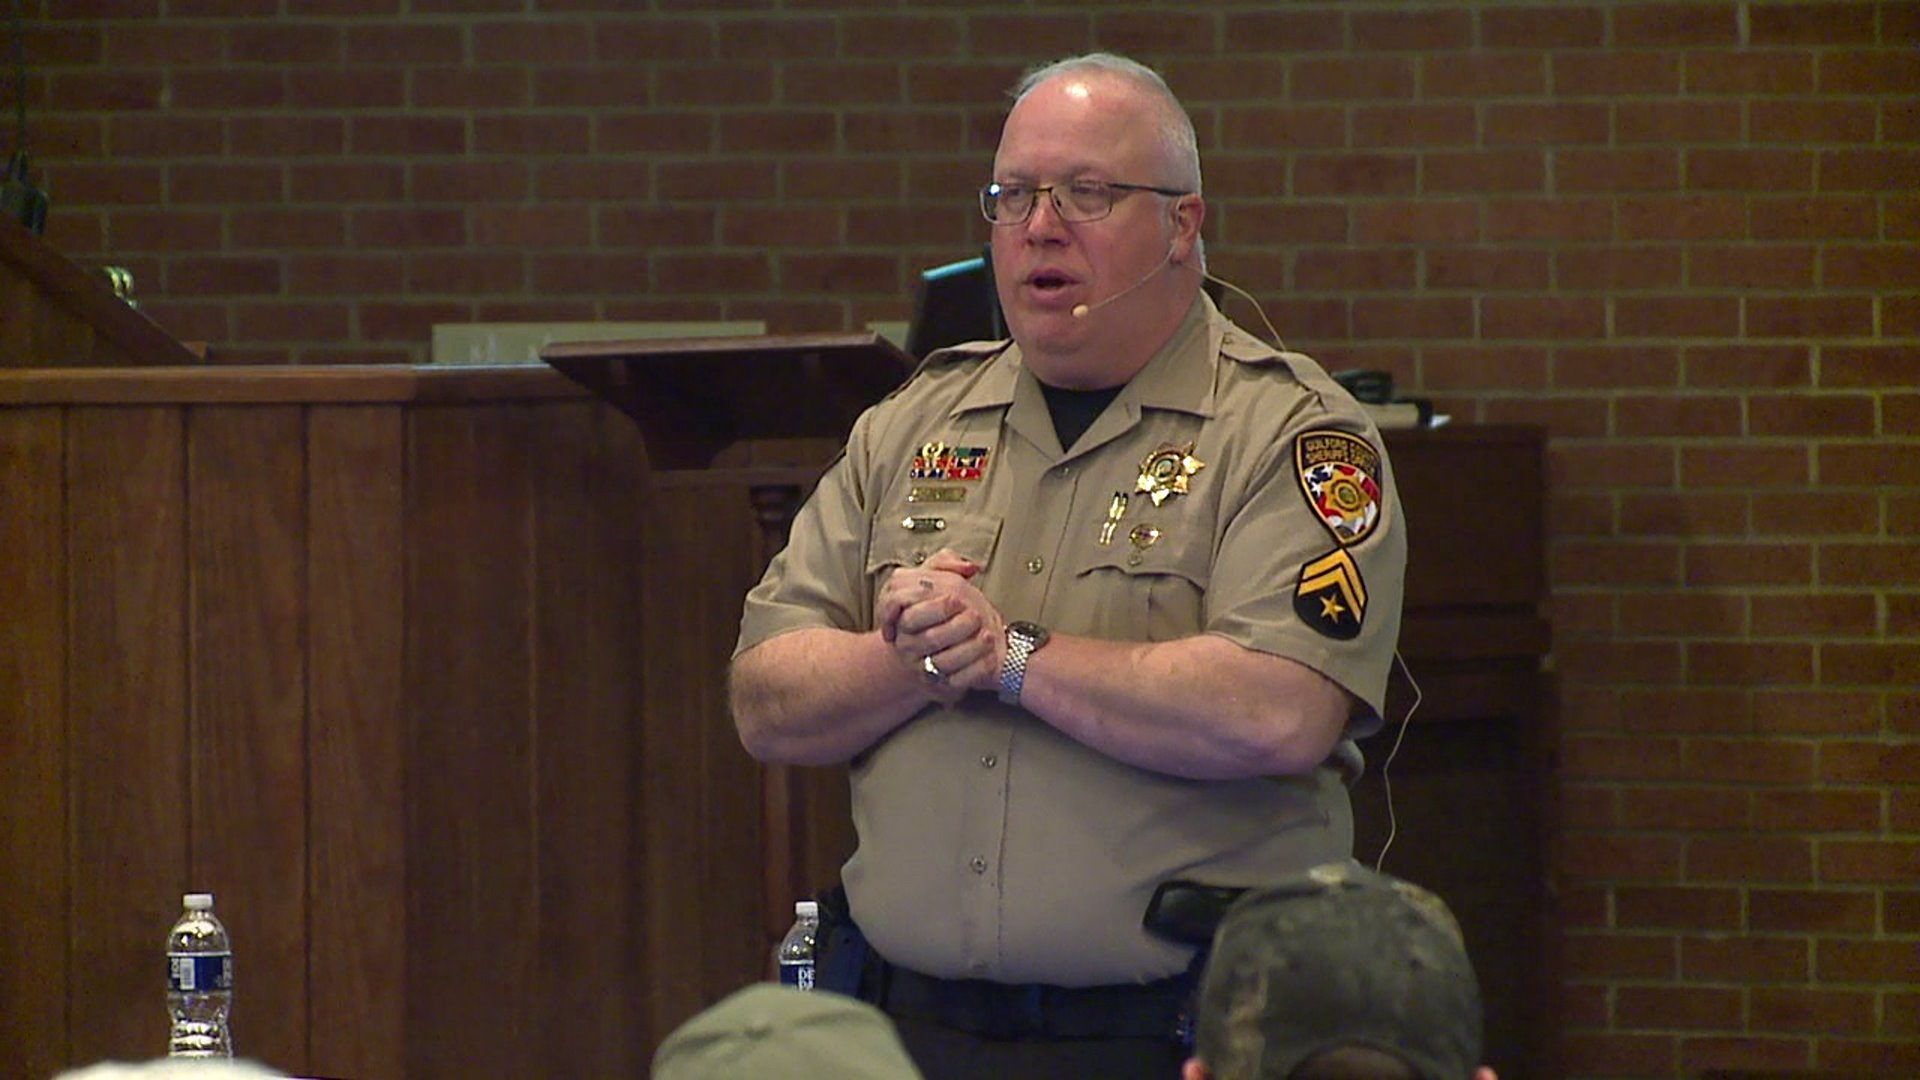 Local law enforcement agencies work to connect with community members